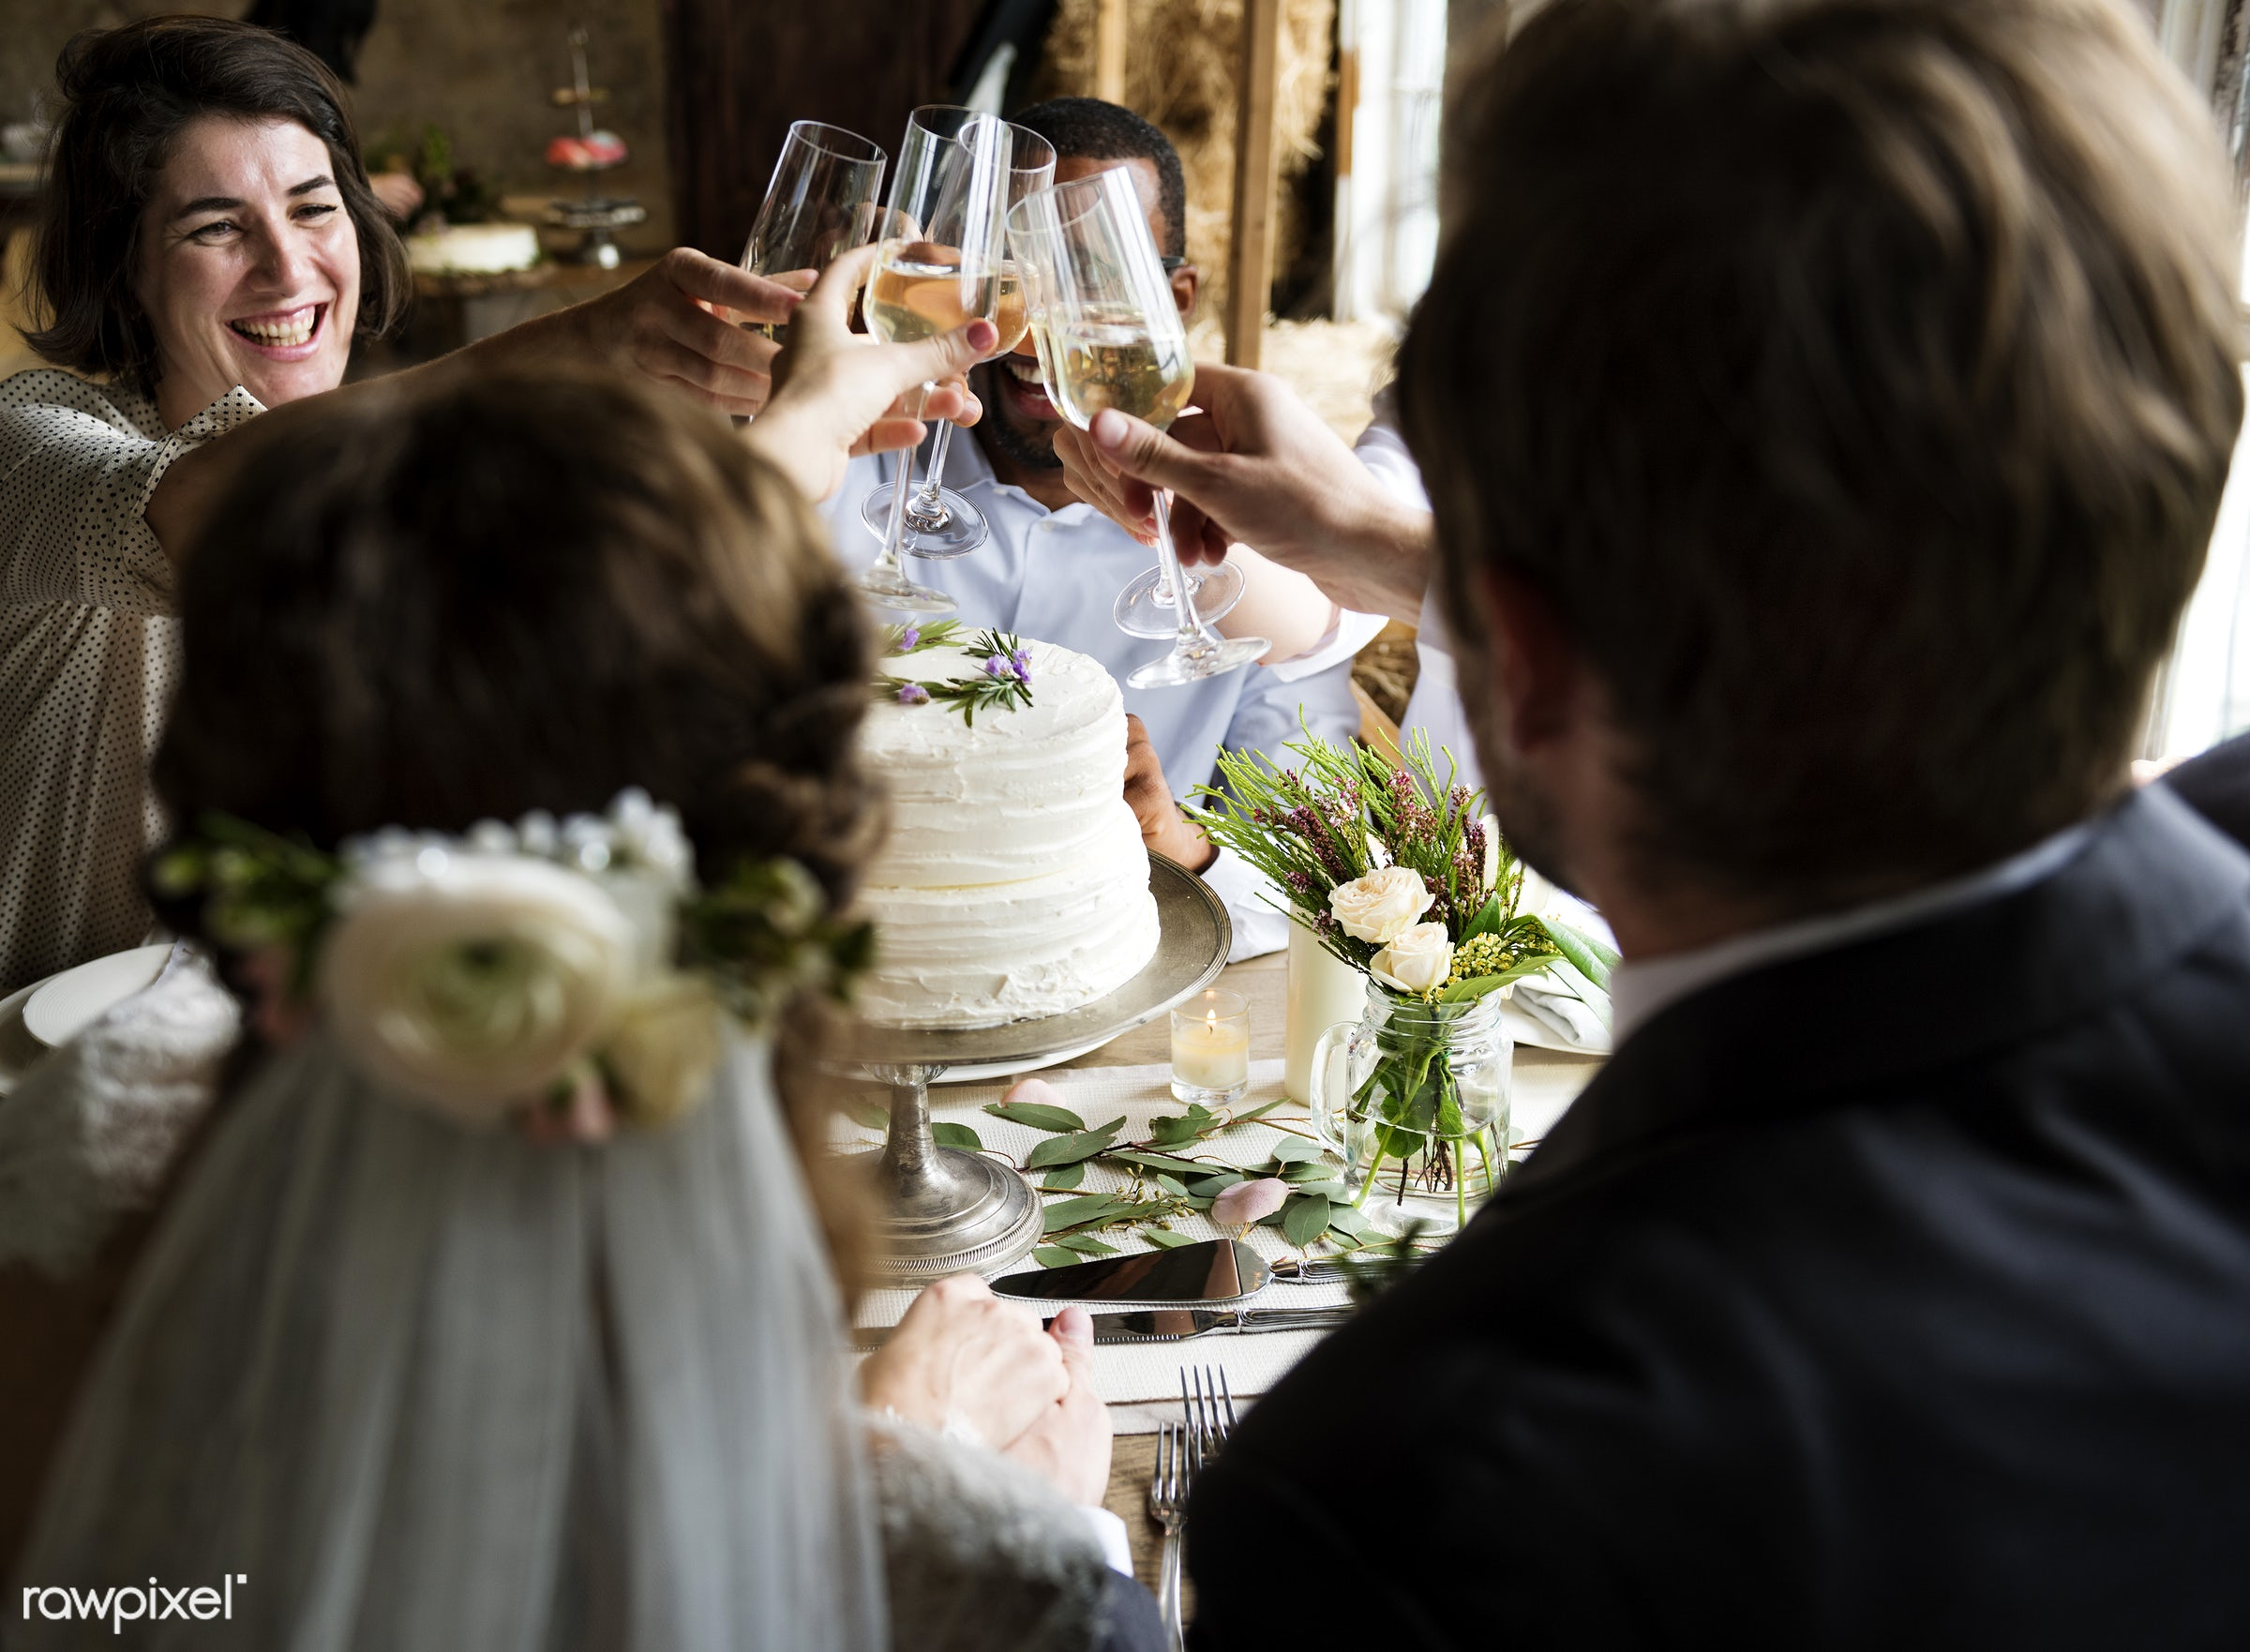 expression, person, people, together, love, friends, married, gather, woman, drink, friendship, flowers, wine, cake,...